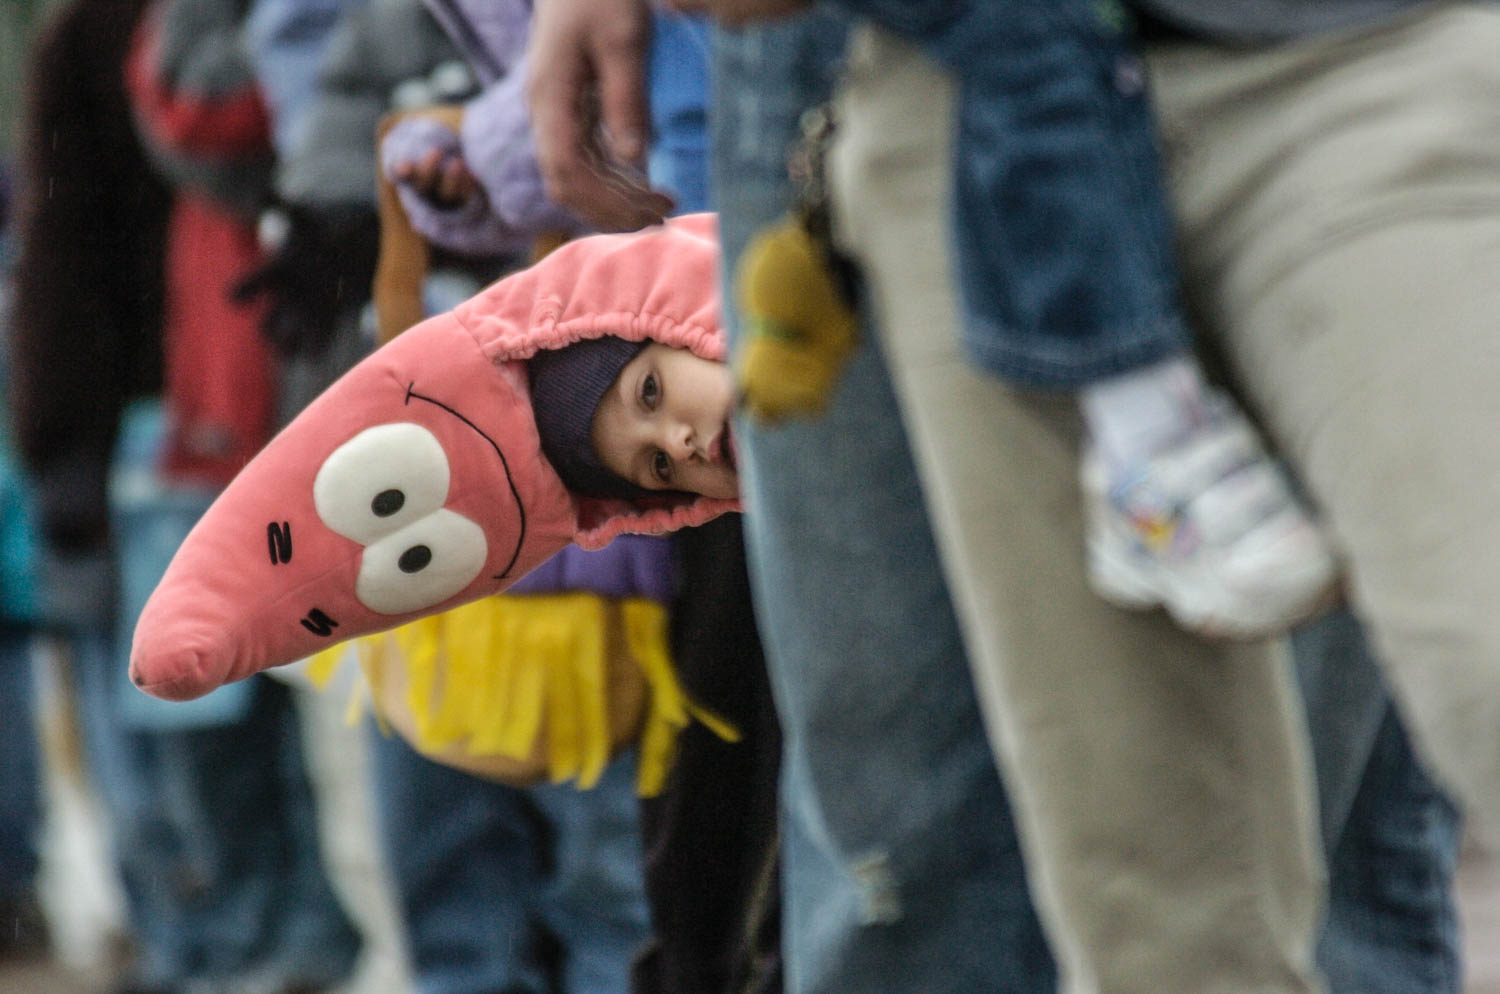 Sebastien Cortez, 5 of Moline, sports a Patrick the Starfish costume, a character from the cartoon SpongeBob SquarePants, as he peeks around the crowd gathered along Avenue of the Cities Sunday afternoon for the Moline Council of Associated Dad's Clubs 48th annual Halloween parade. (Todd Mizener - Dispatch/Argus)